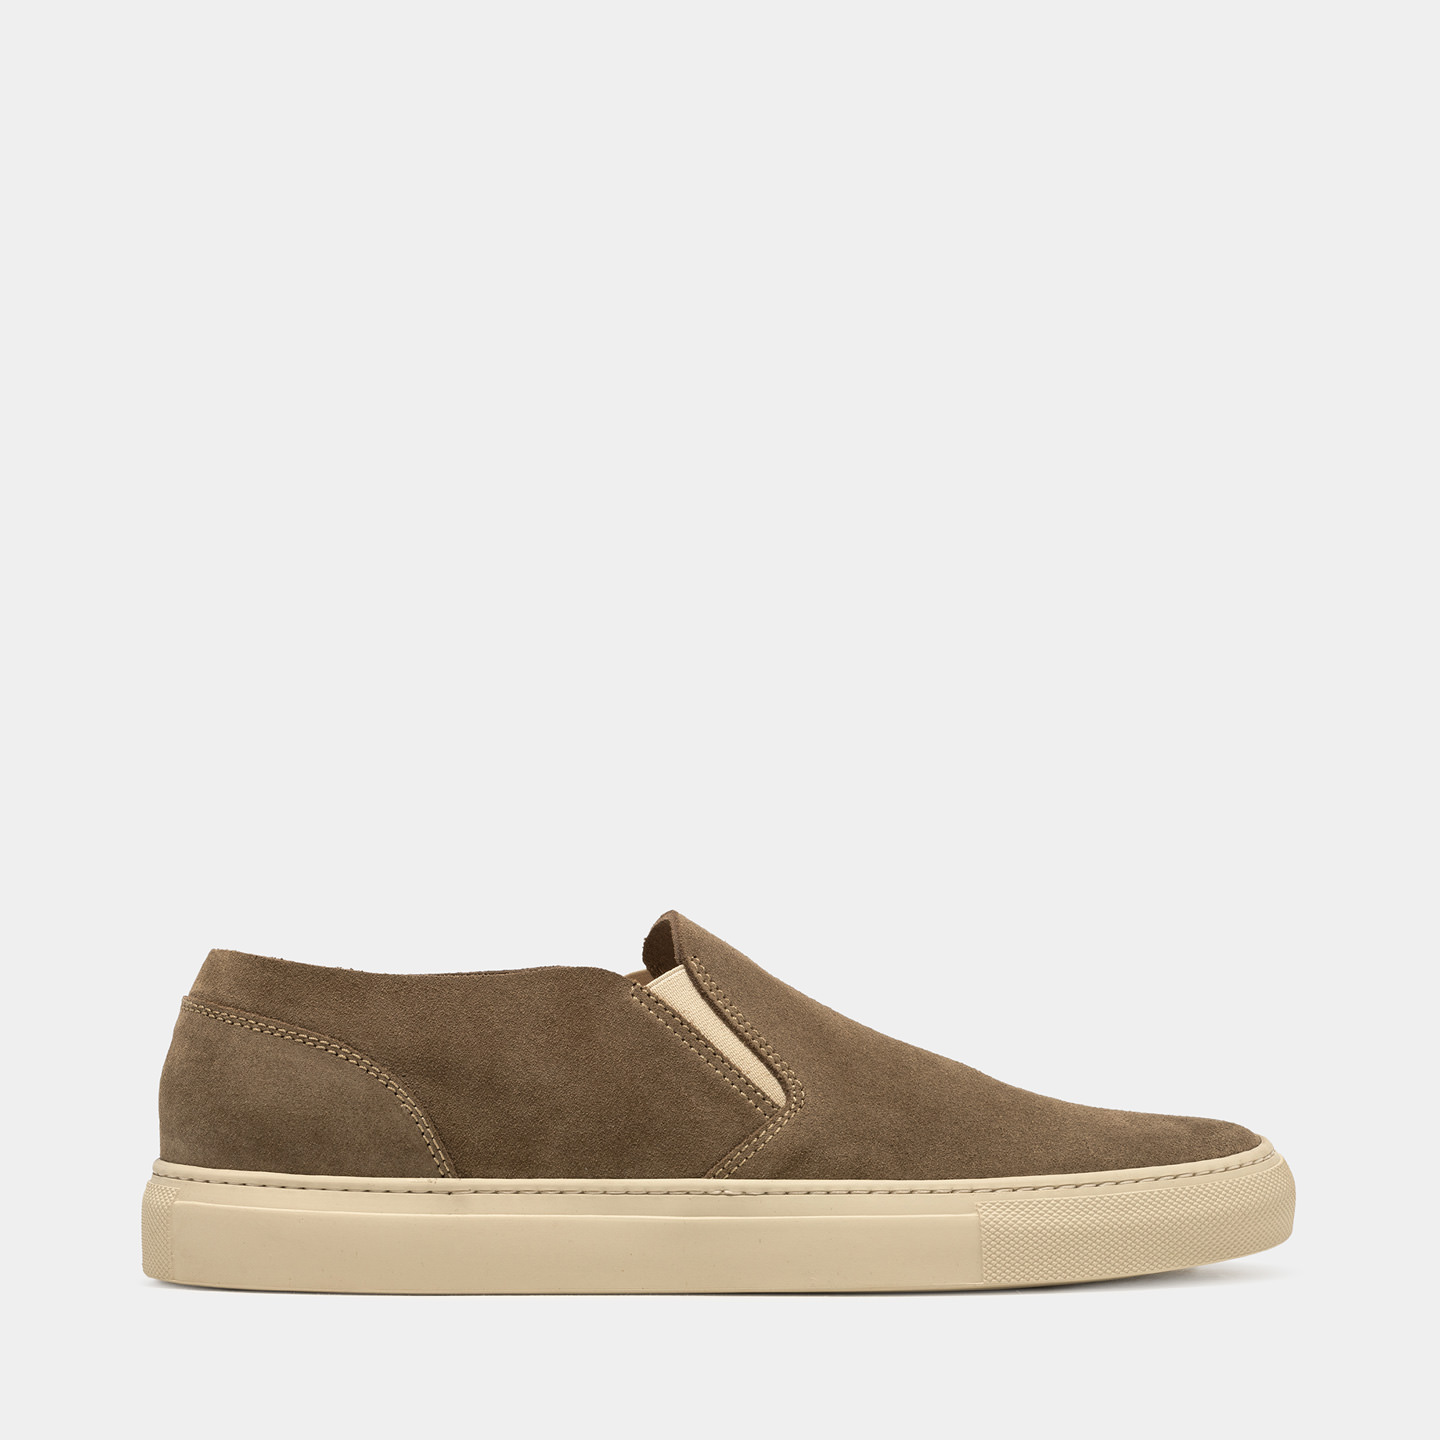 BUTTERO: TANINO SLIP ON SHOES IN GRAY SUEDE